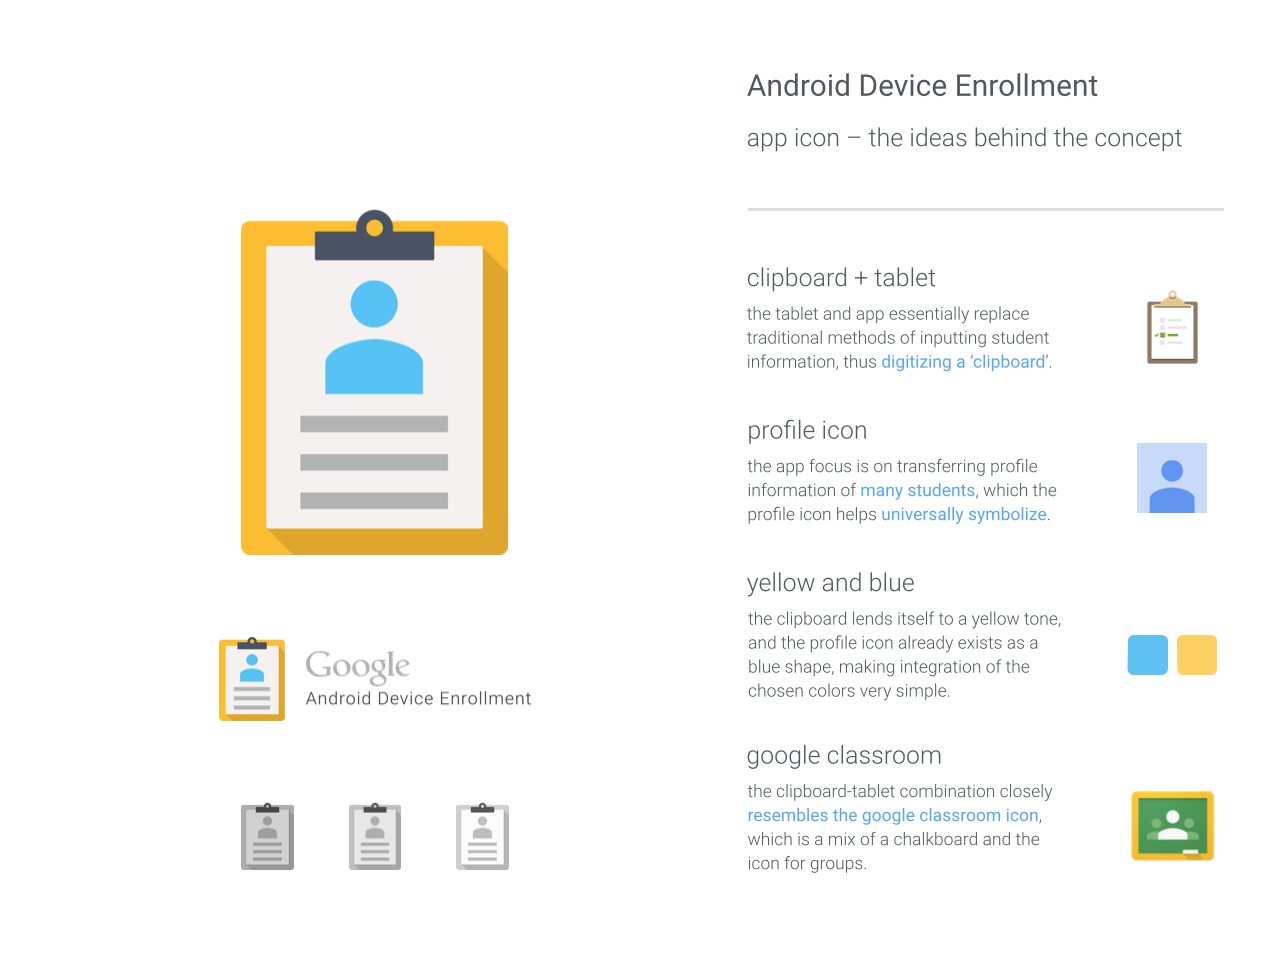 Alice Chuang / Projects / Android Enrollment App Icon | Dribbble